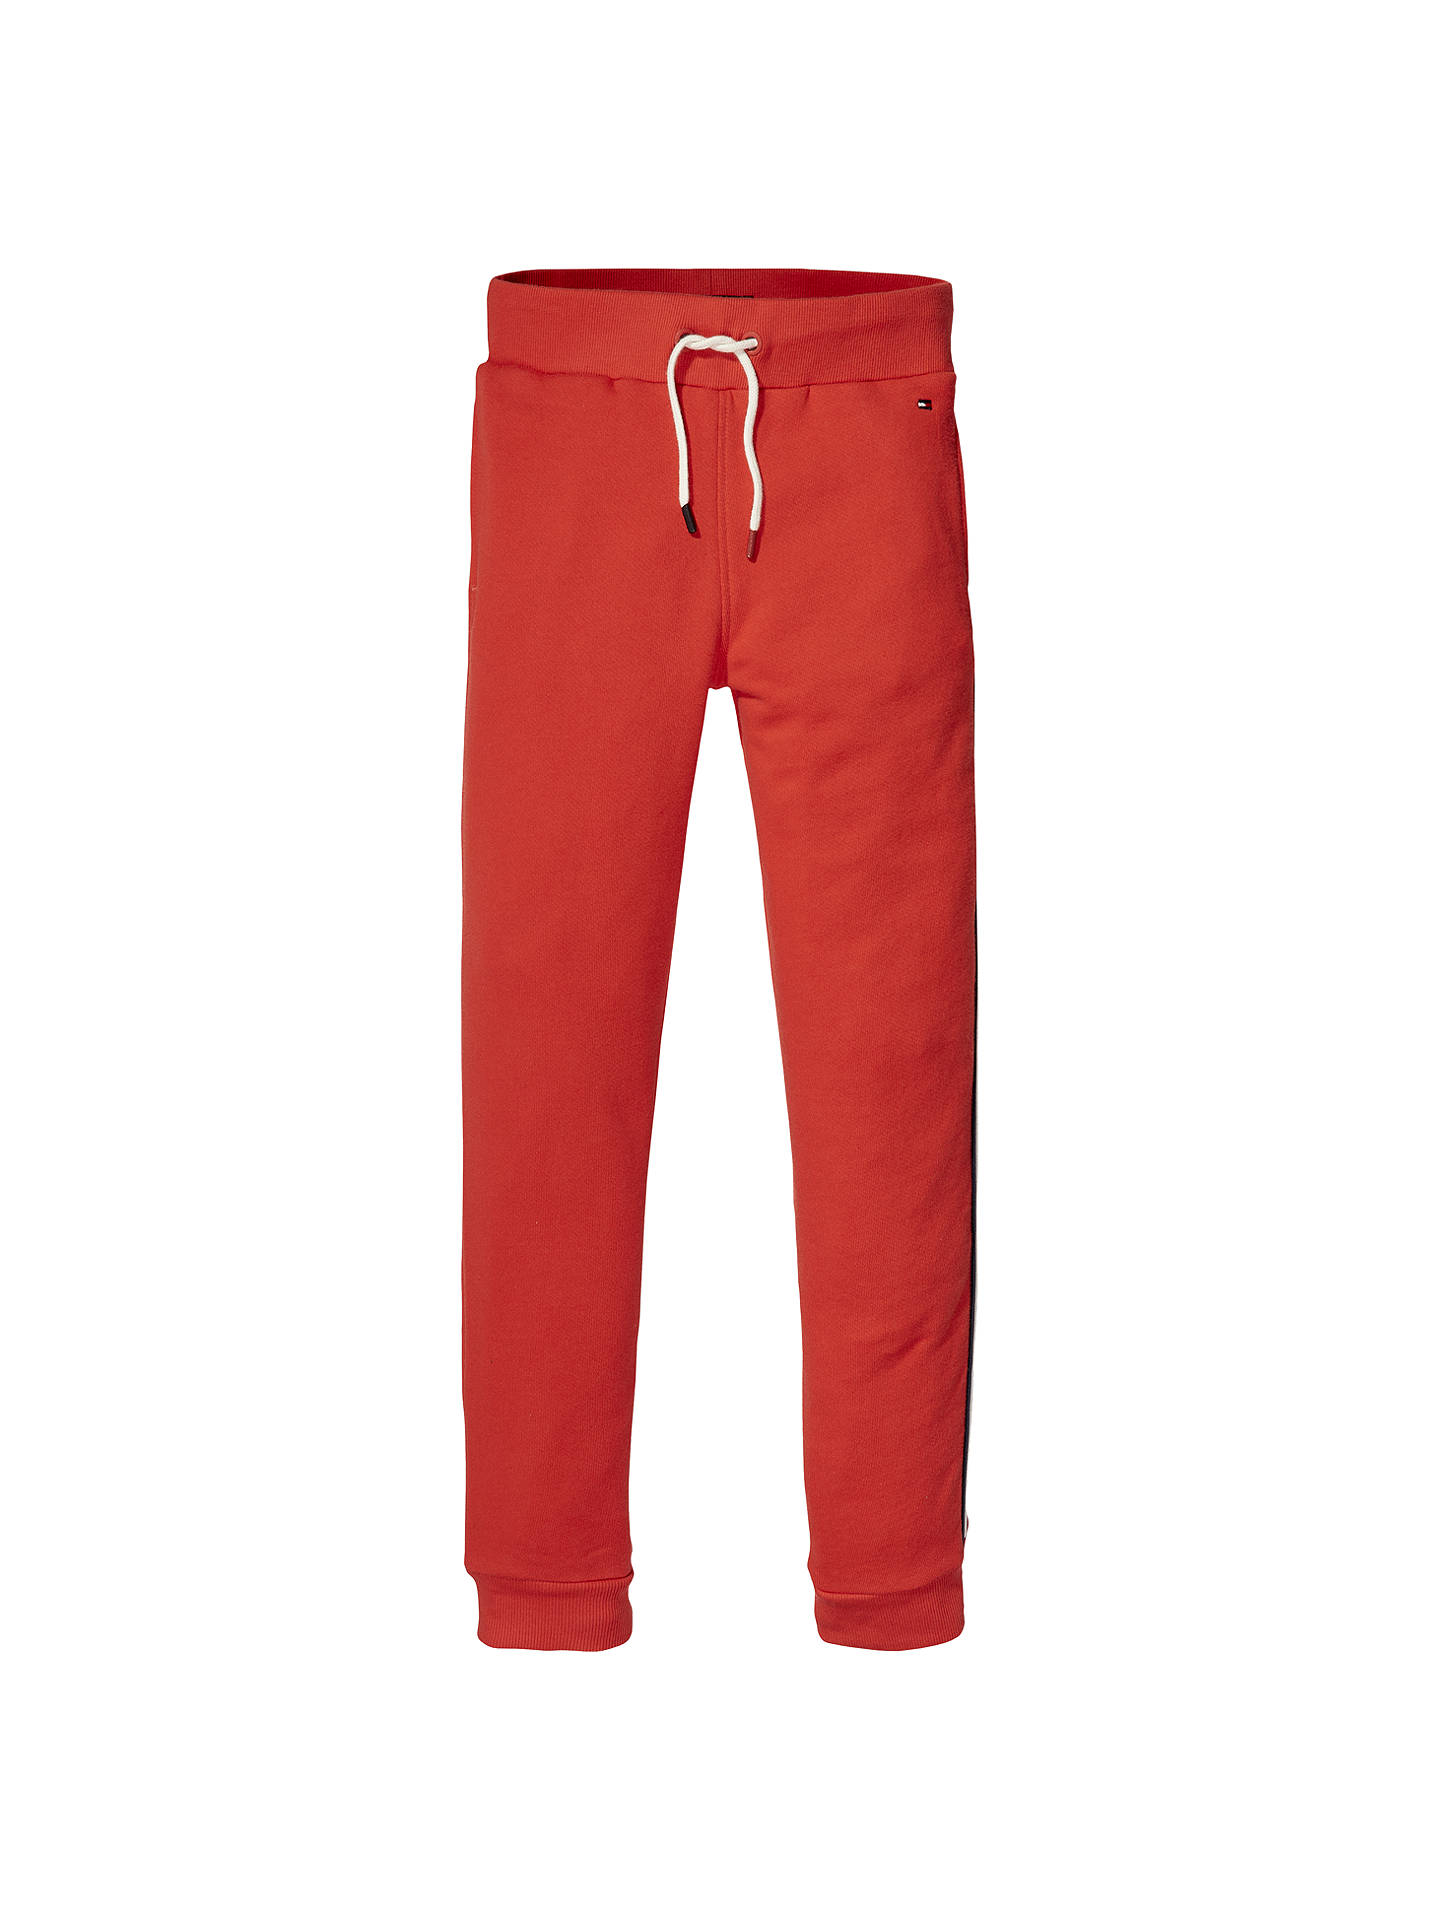 38e28806e5a Buy Tommy Hilfiger Boys' Sweatpants, Red, 3 years Online at johnlewis. ...